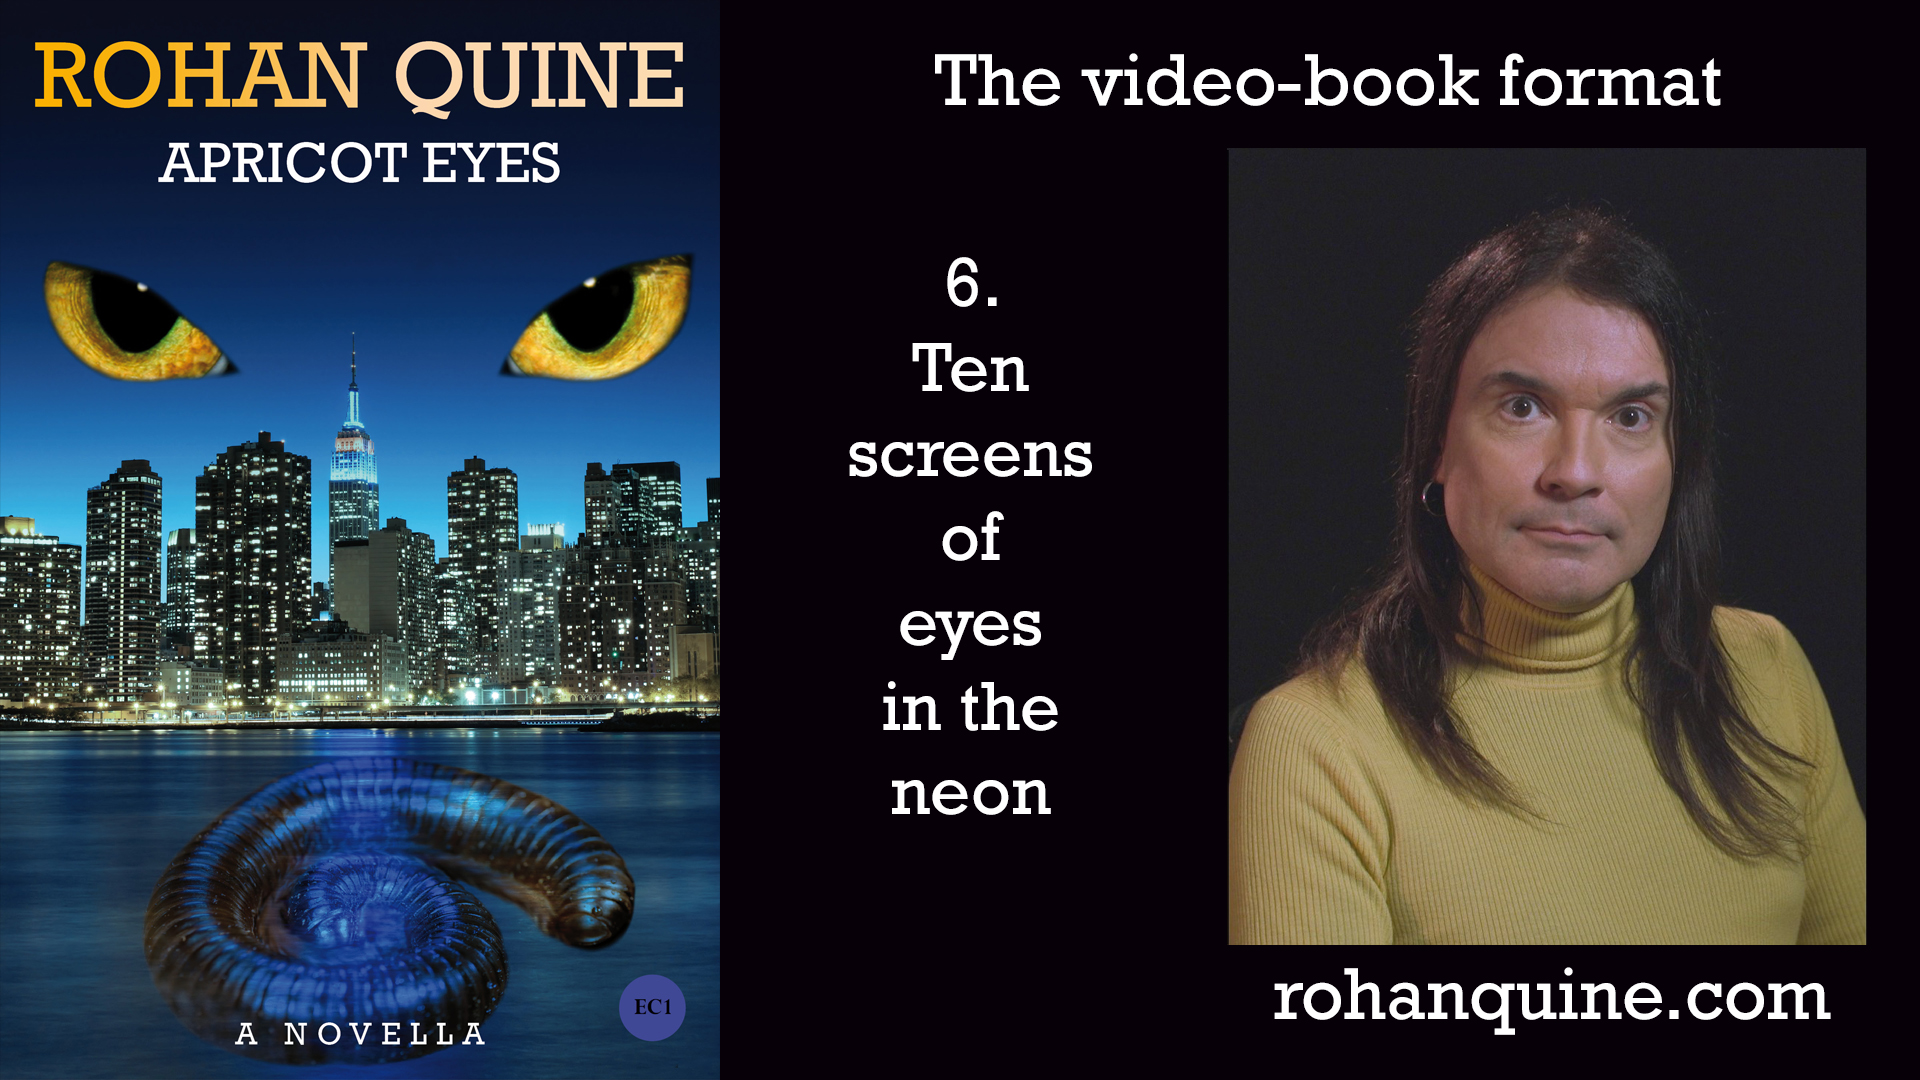 APRICOT EYES by Rohan Quine - video-book format - chapter 6